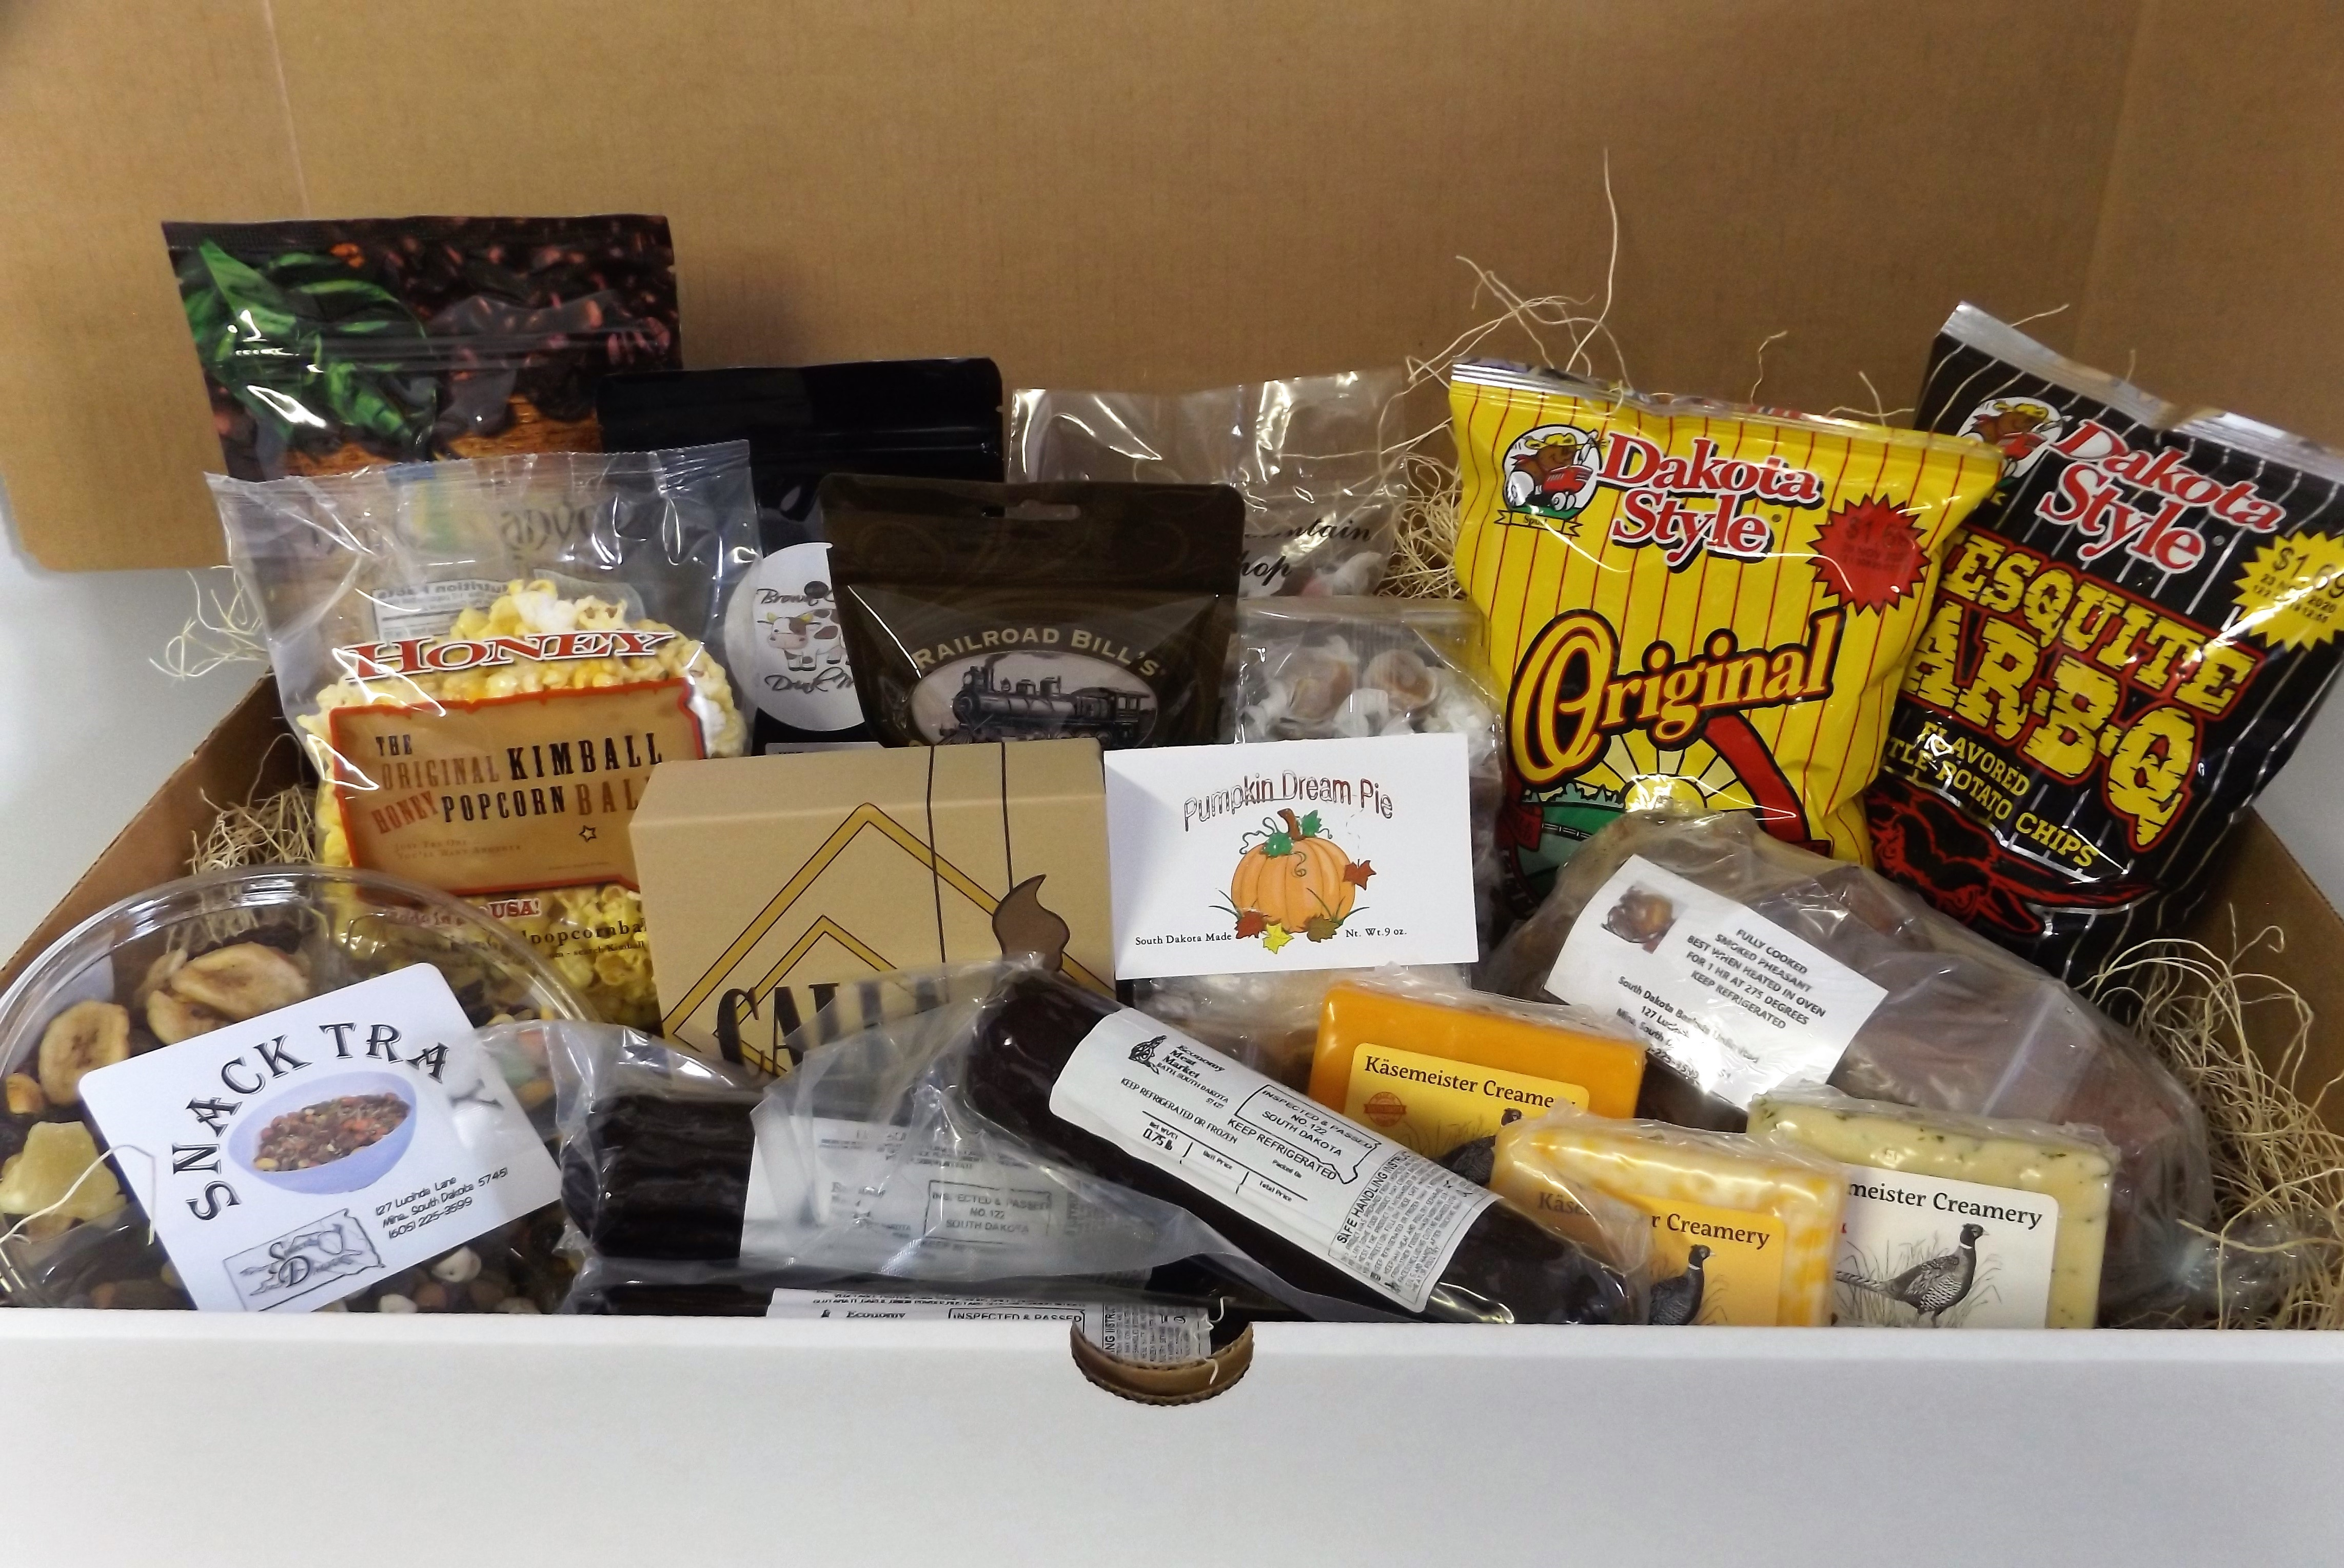 The Granddaddy Gift Box